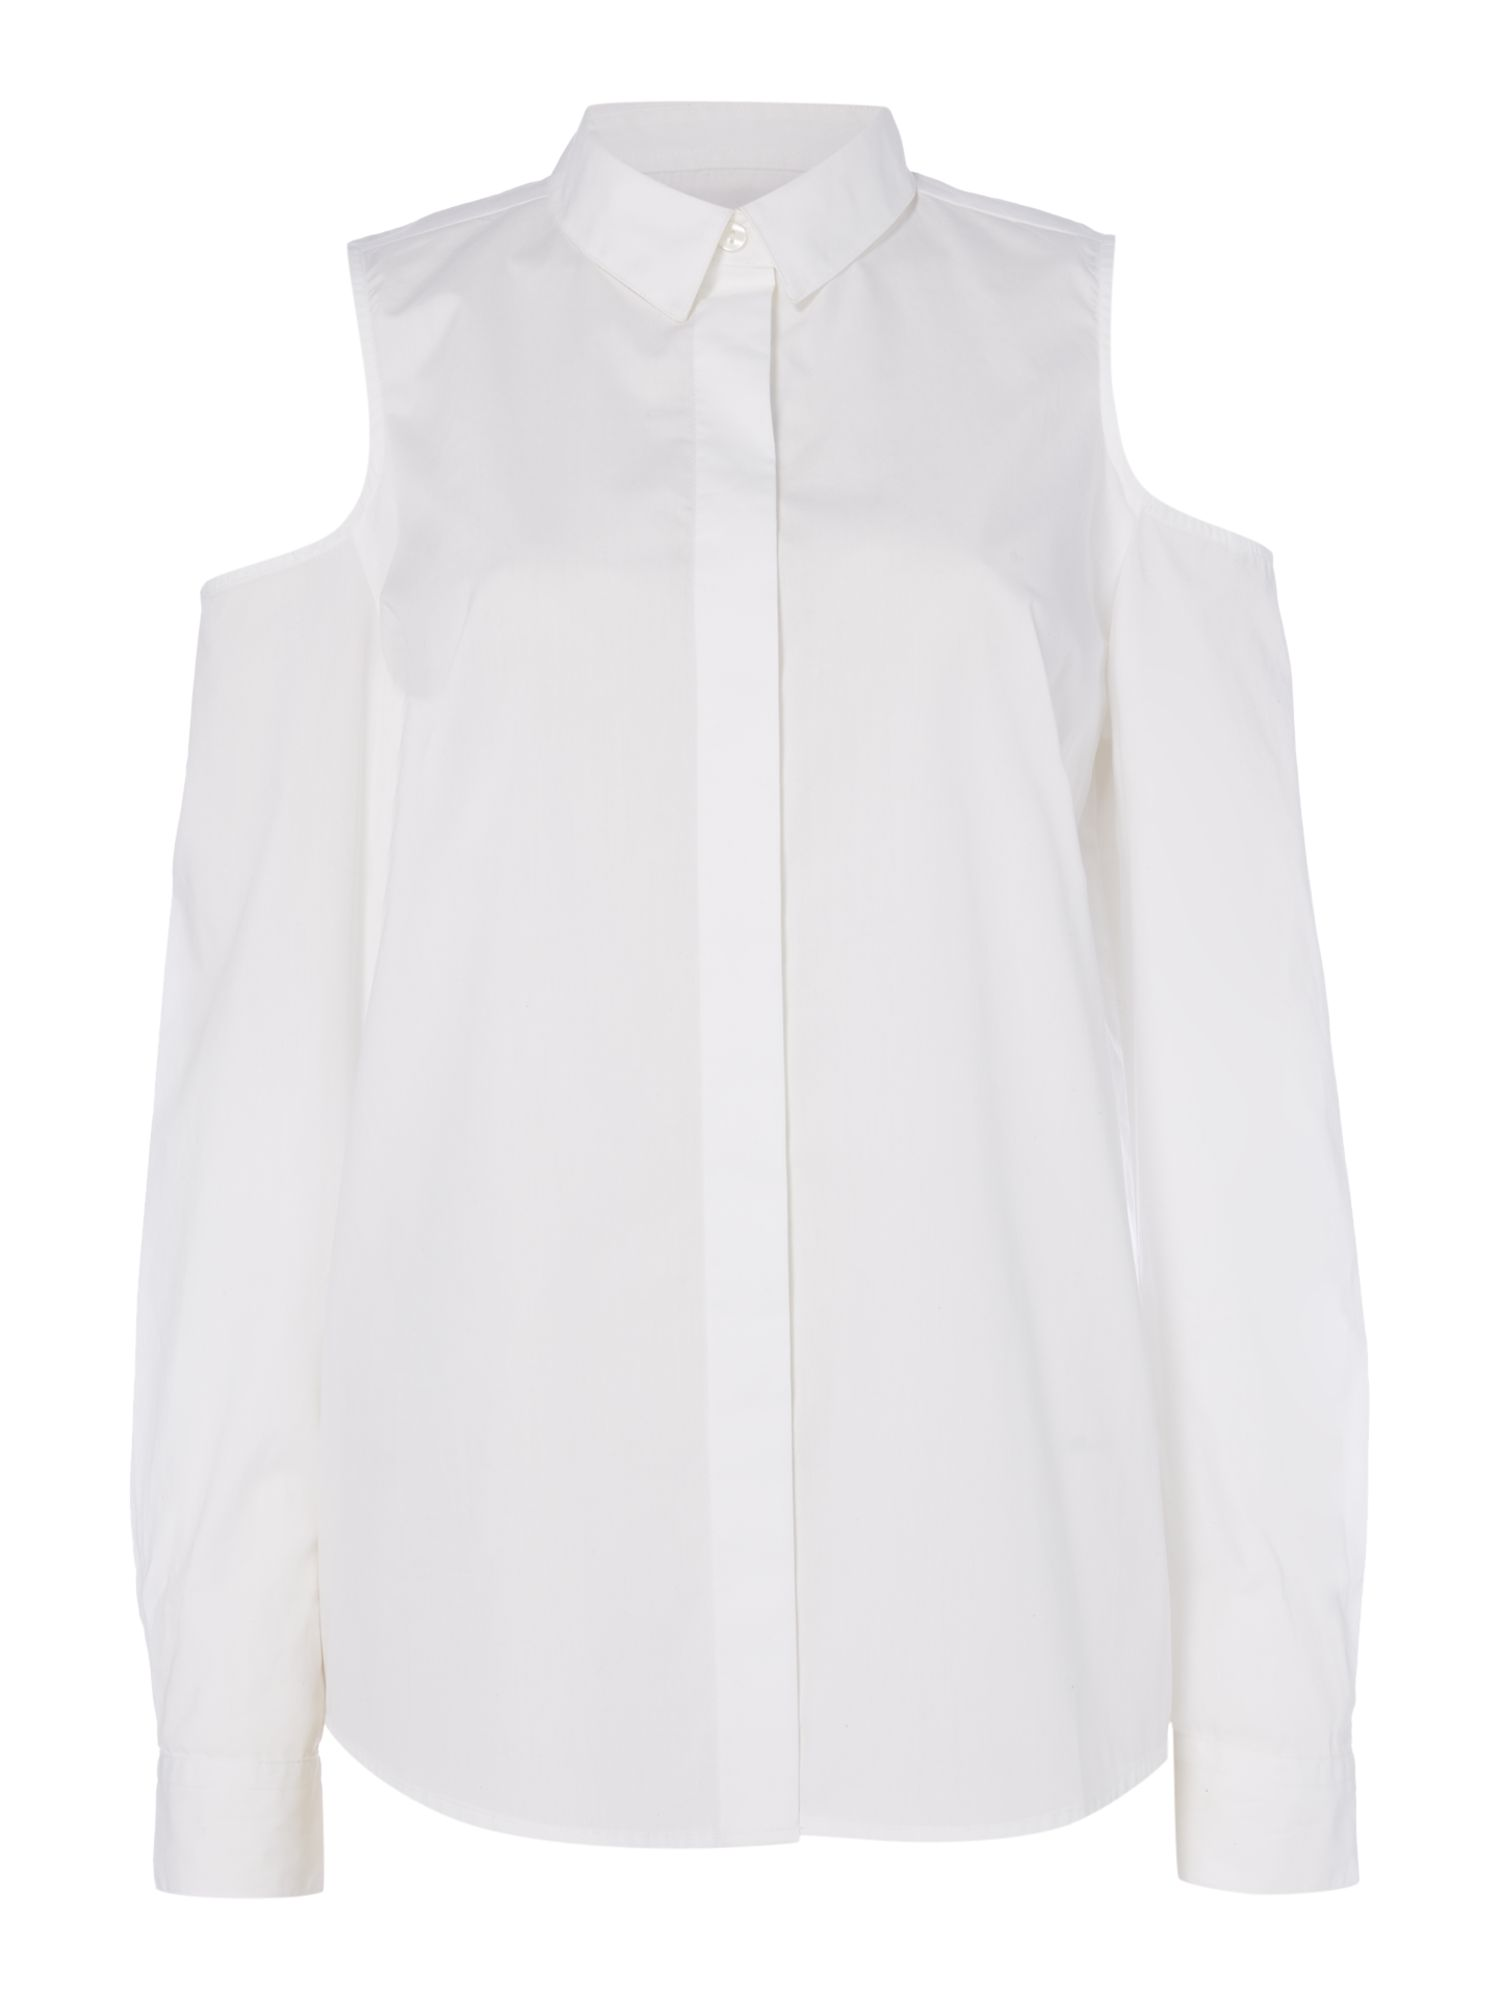 Label Lab Cold Shoulder Shirt, White